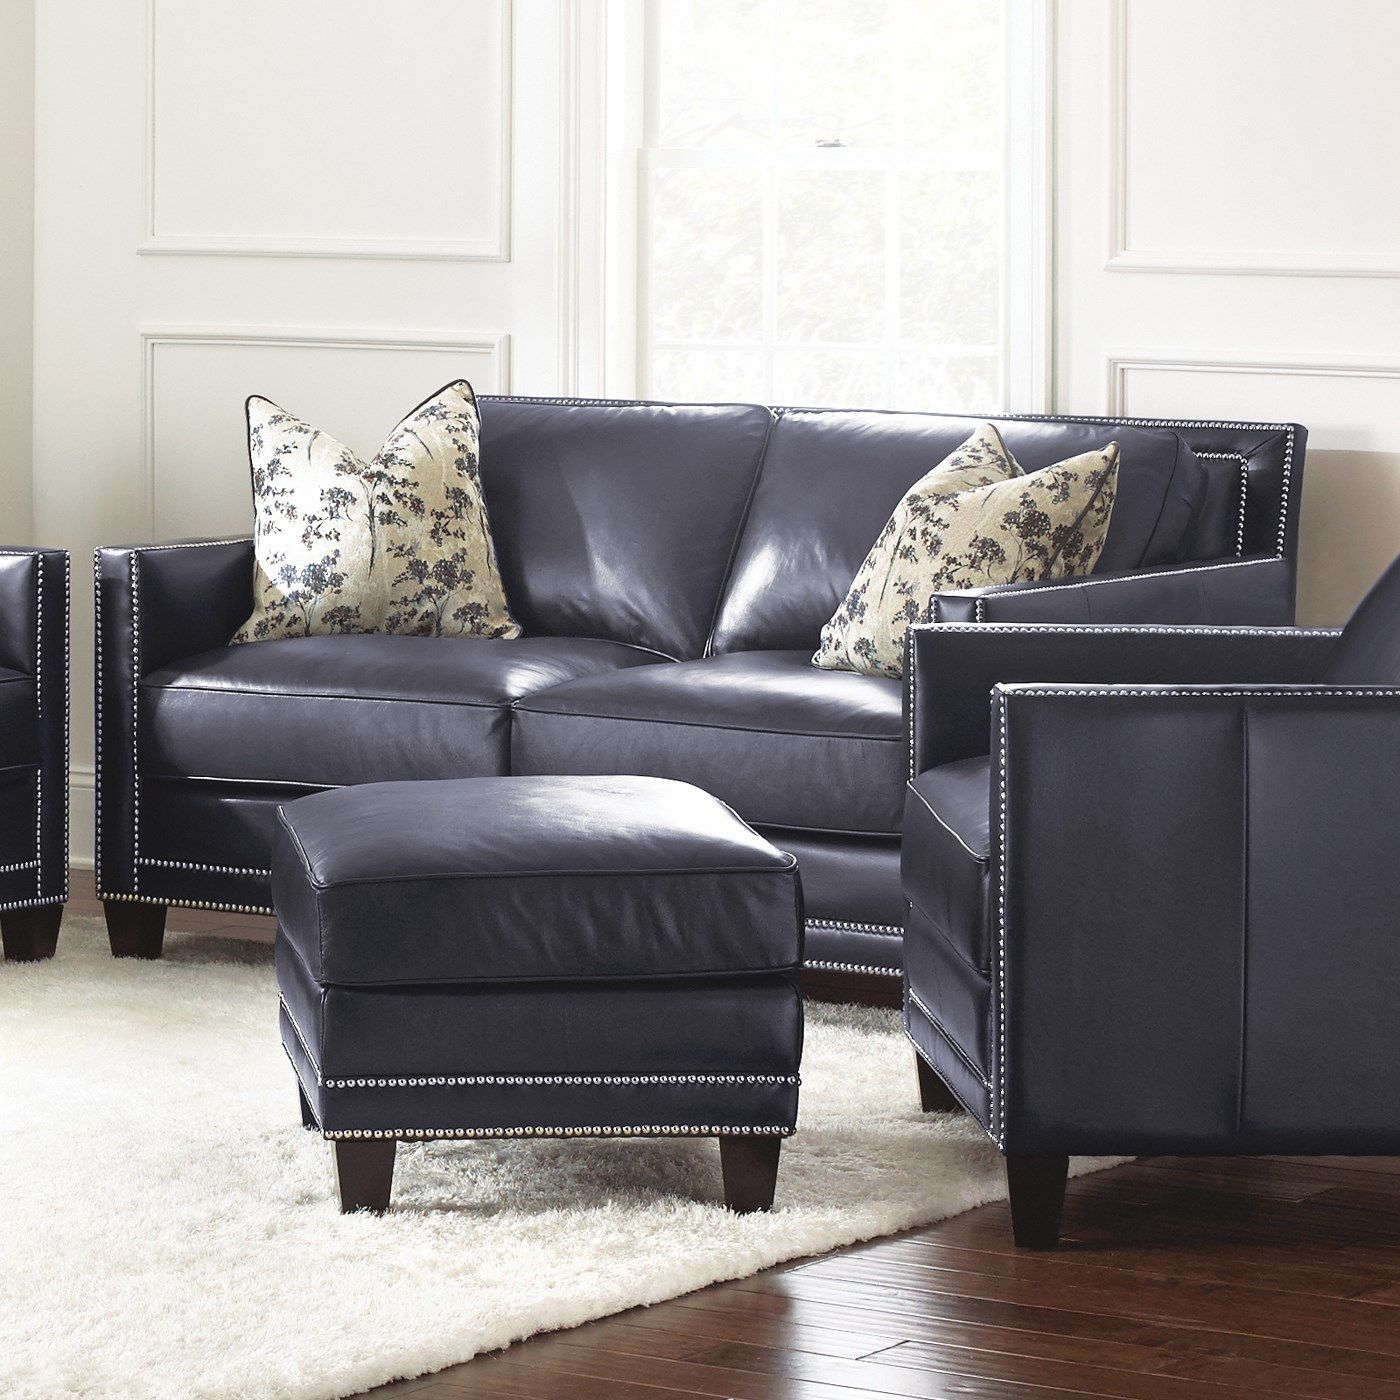 black leather living room furniture sets%0A     Steve Silver Hendrix Loveseat with   Accent Pillows is an elegantly  modern piece perfect for contemporary decors  This allleather loveseat  features